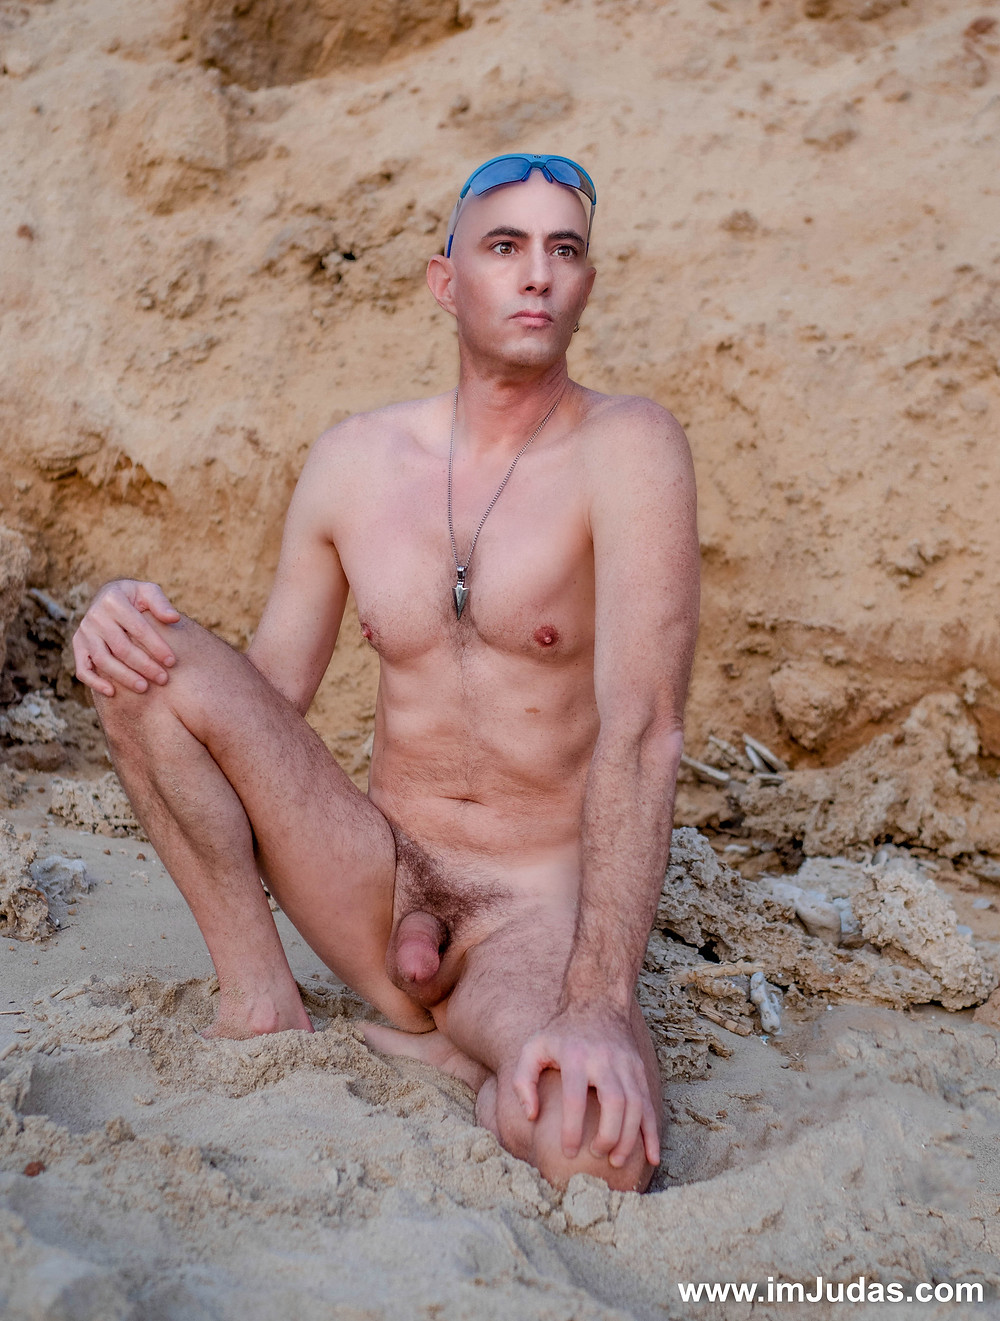 Naked at the beach, showing my cock